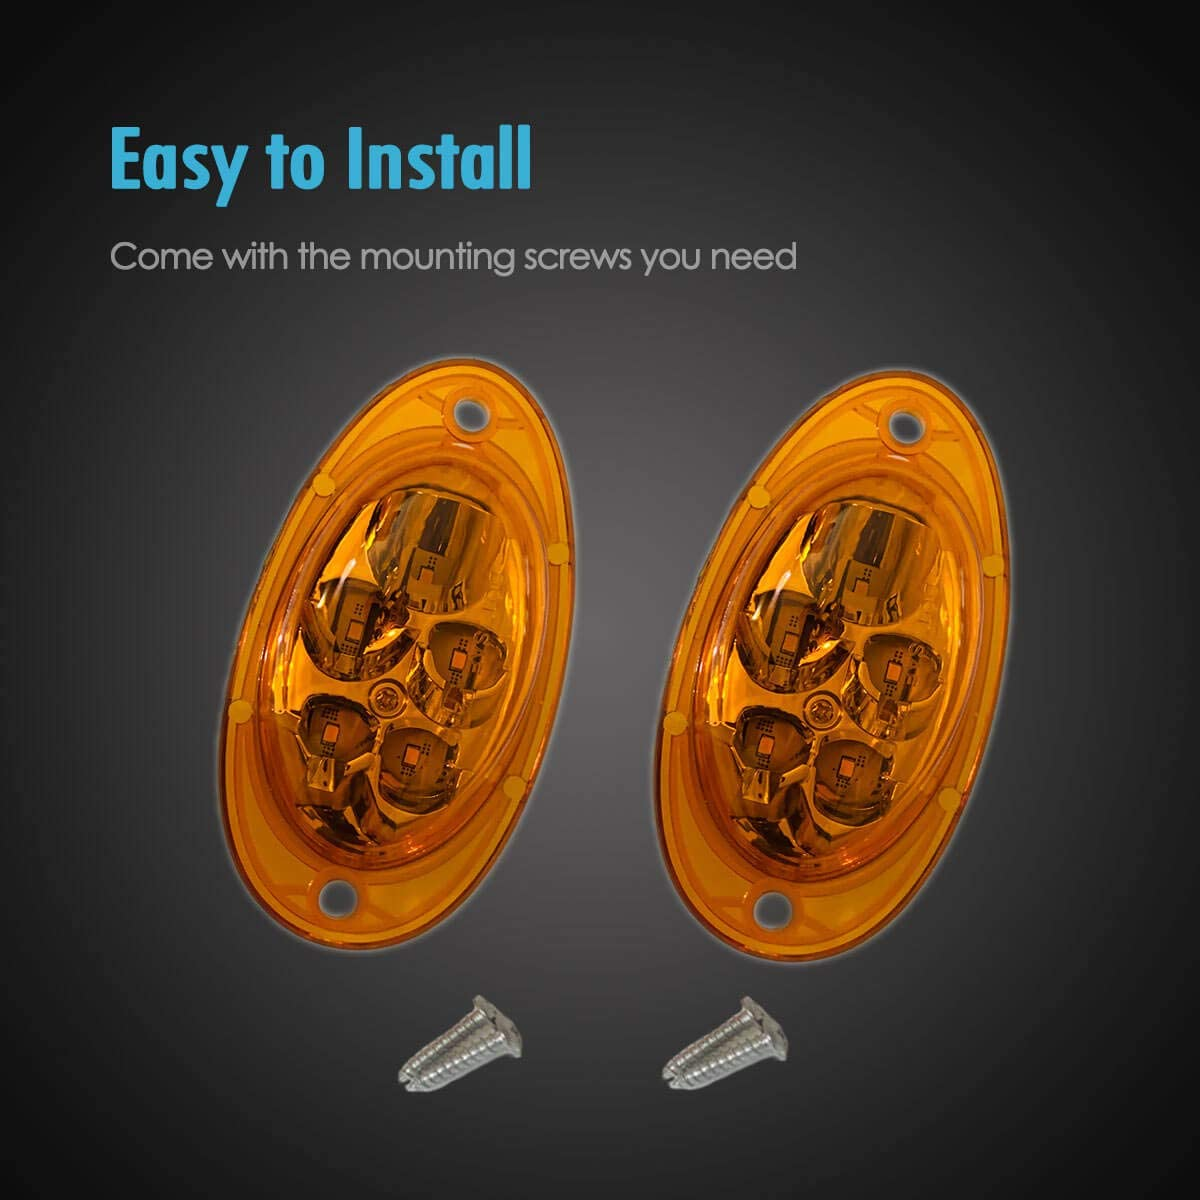 TCTAuto for Freightliner Cascadia Amber LED Side Marker Turn Signal Cab Parking Light Lamps Sealed 5-2835-SMD